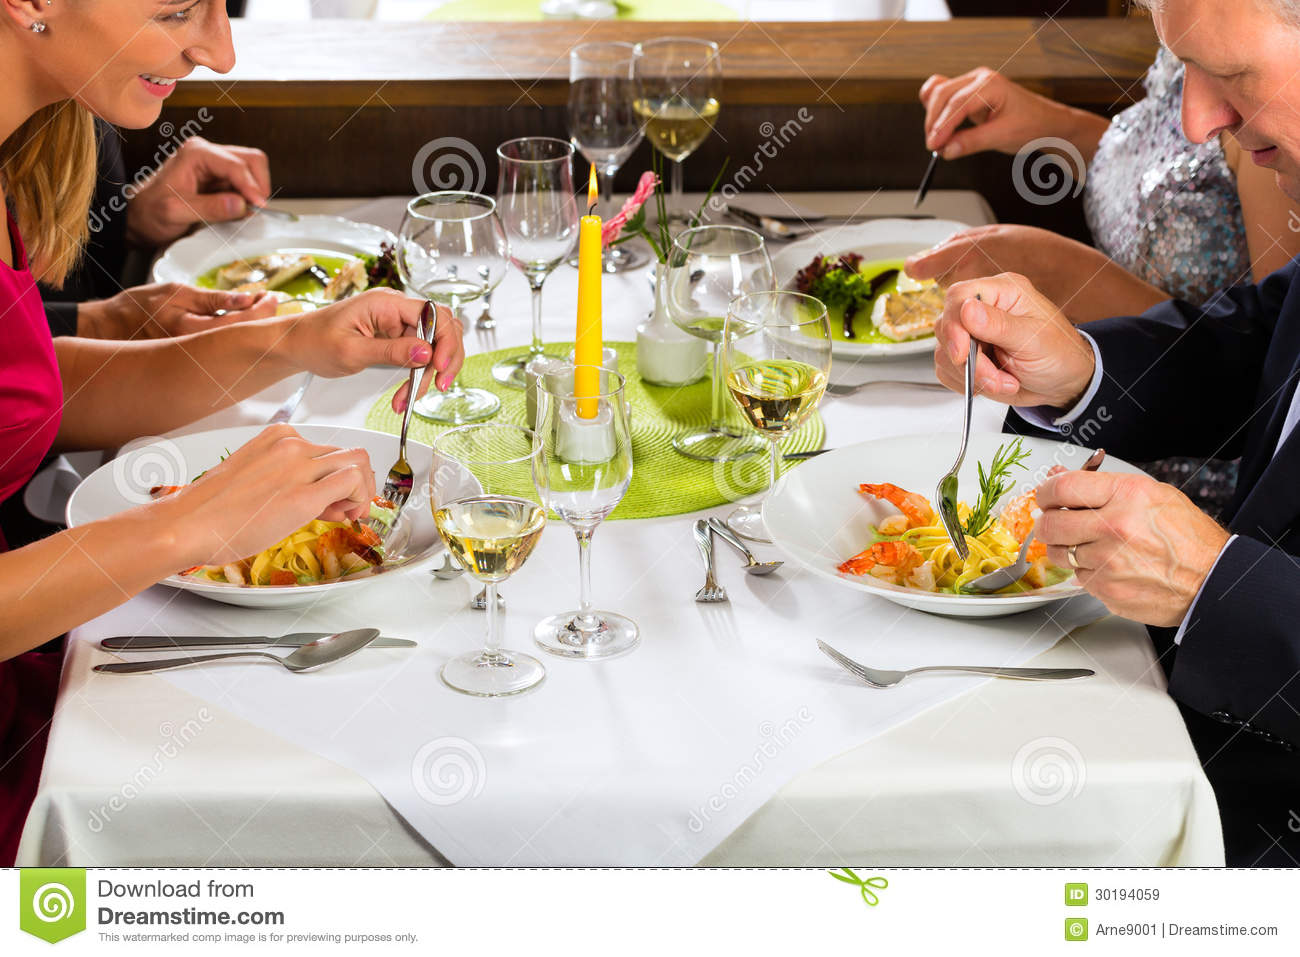 Family with adult kids in Restaurant